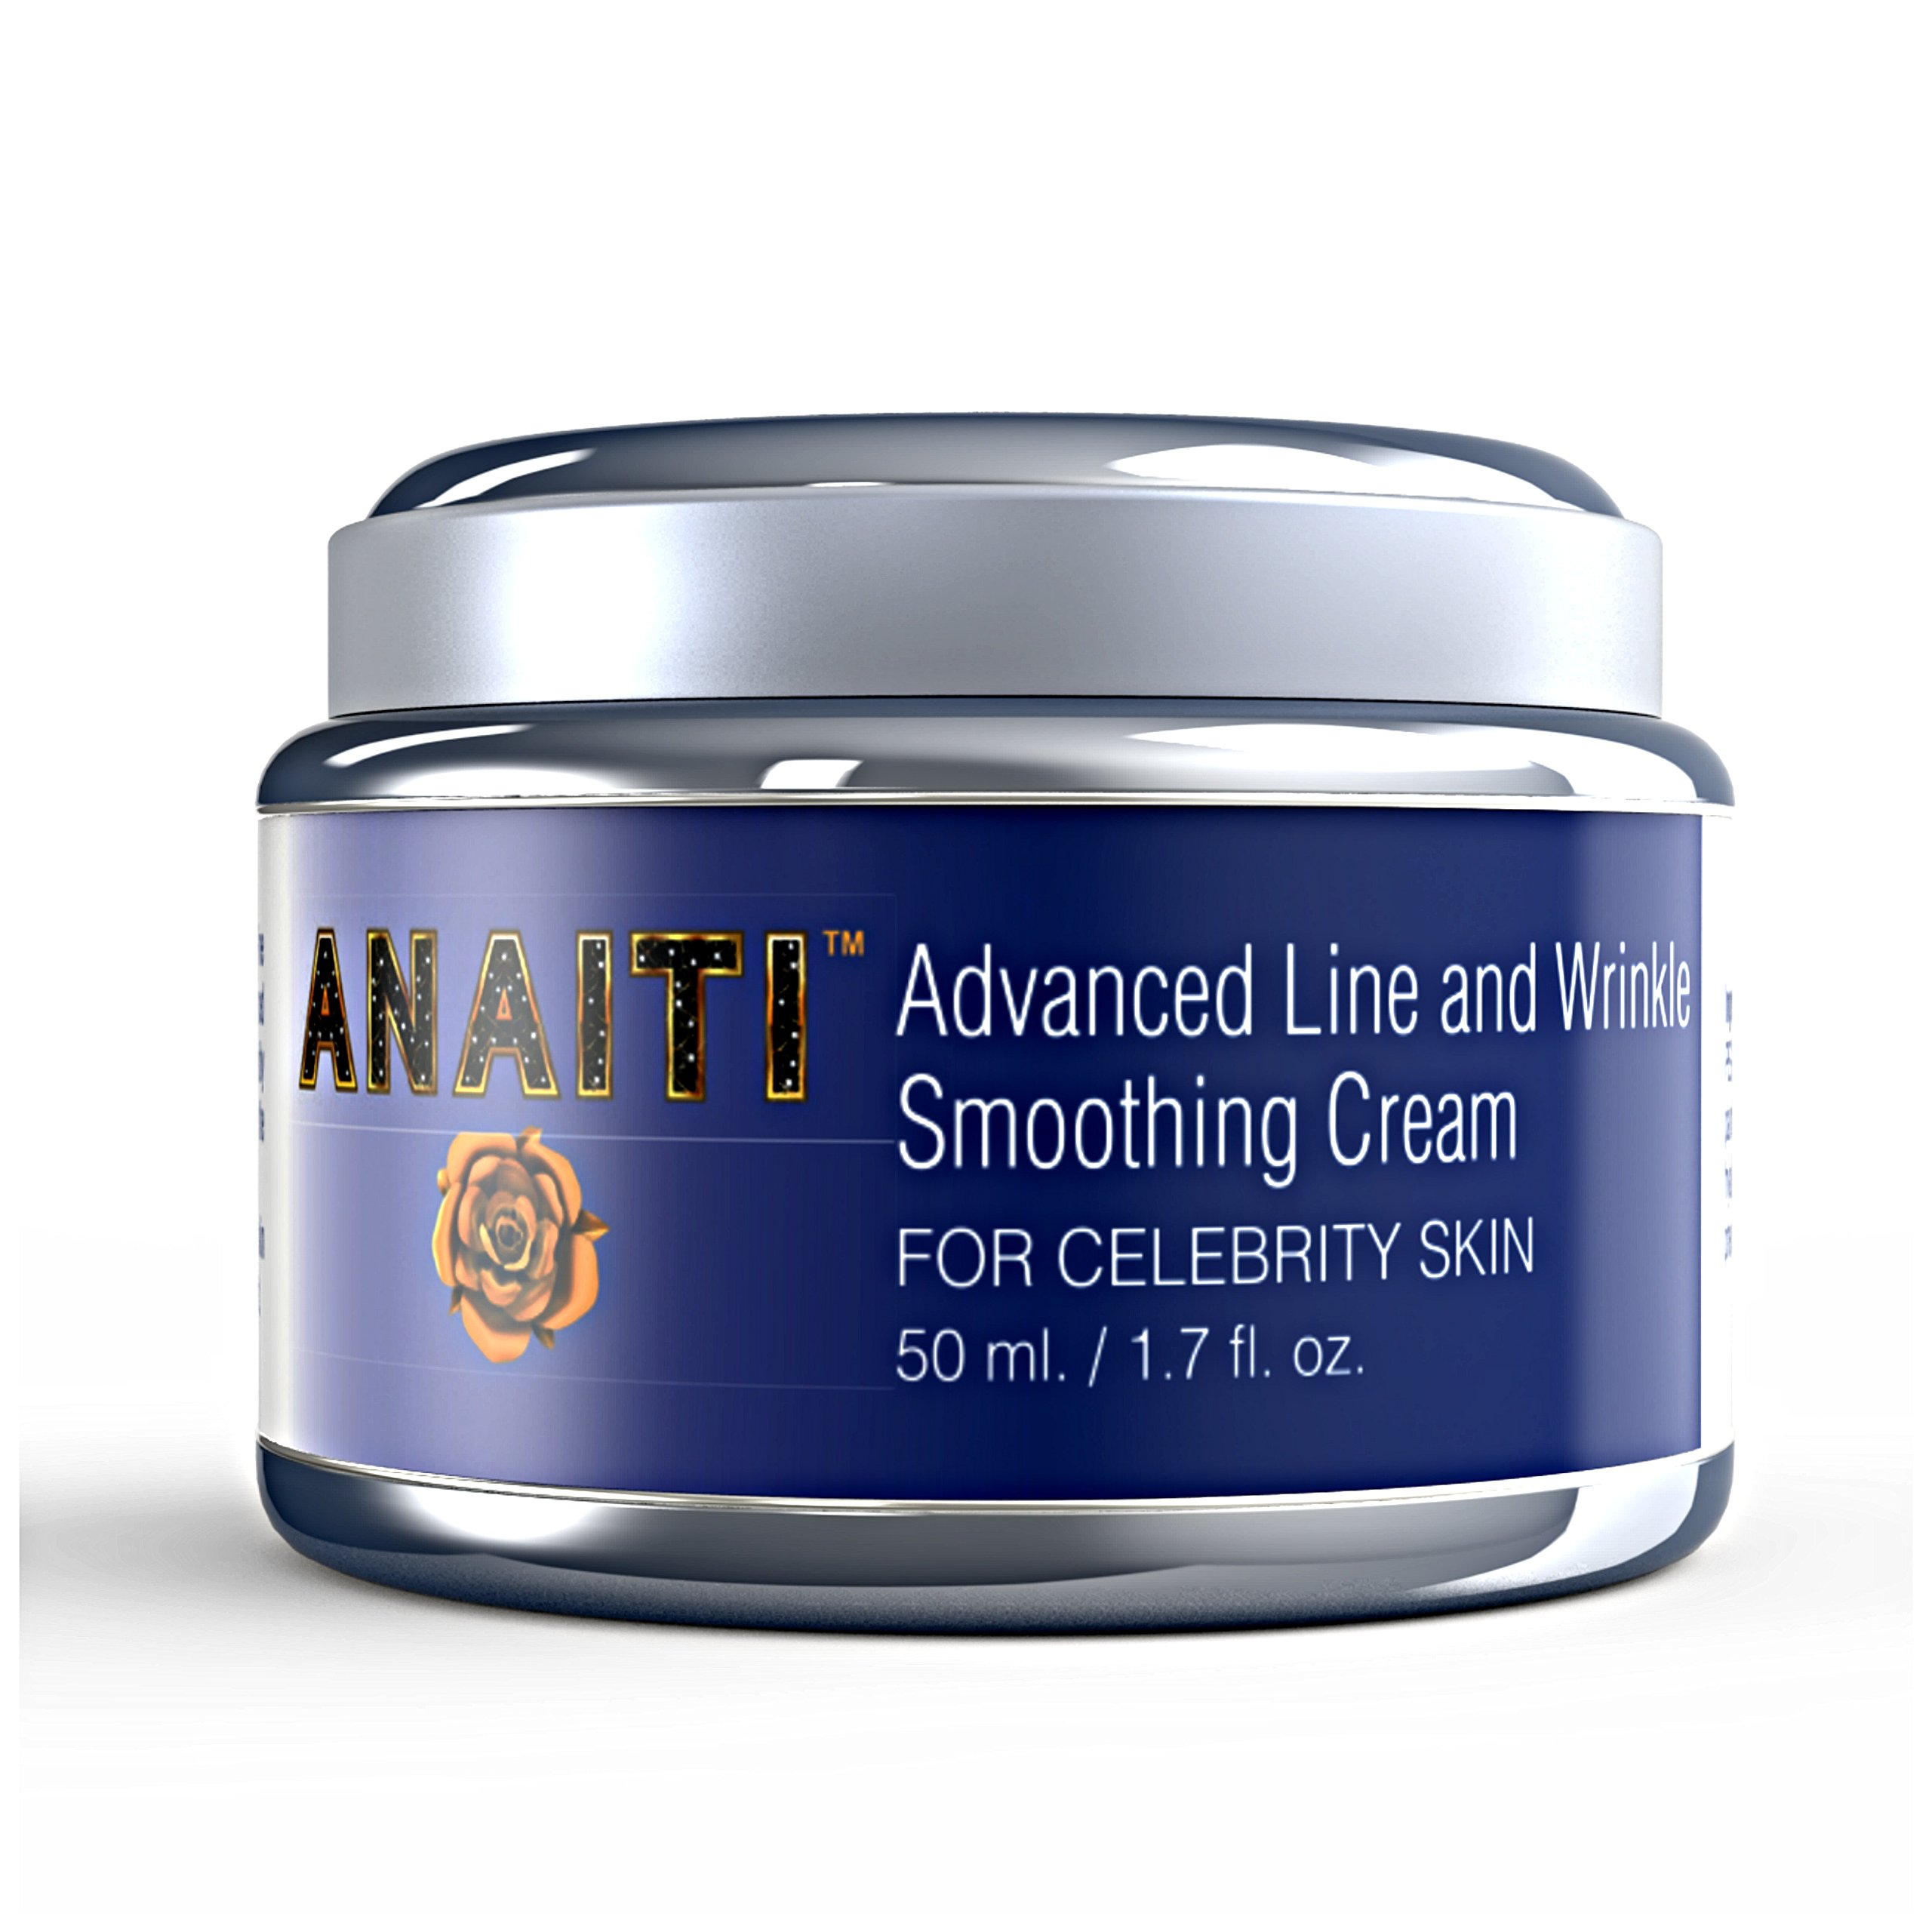 Anti-Aging Wrinkle Smoothing Cream   HYALURONIC ACID, Peptides   Get Rid Of Wrinkles with Skin Tightening Daily Moisturizer   Dermatologist Skin Care for Eyes, Face, Forehead - 1.7 oz.